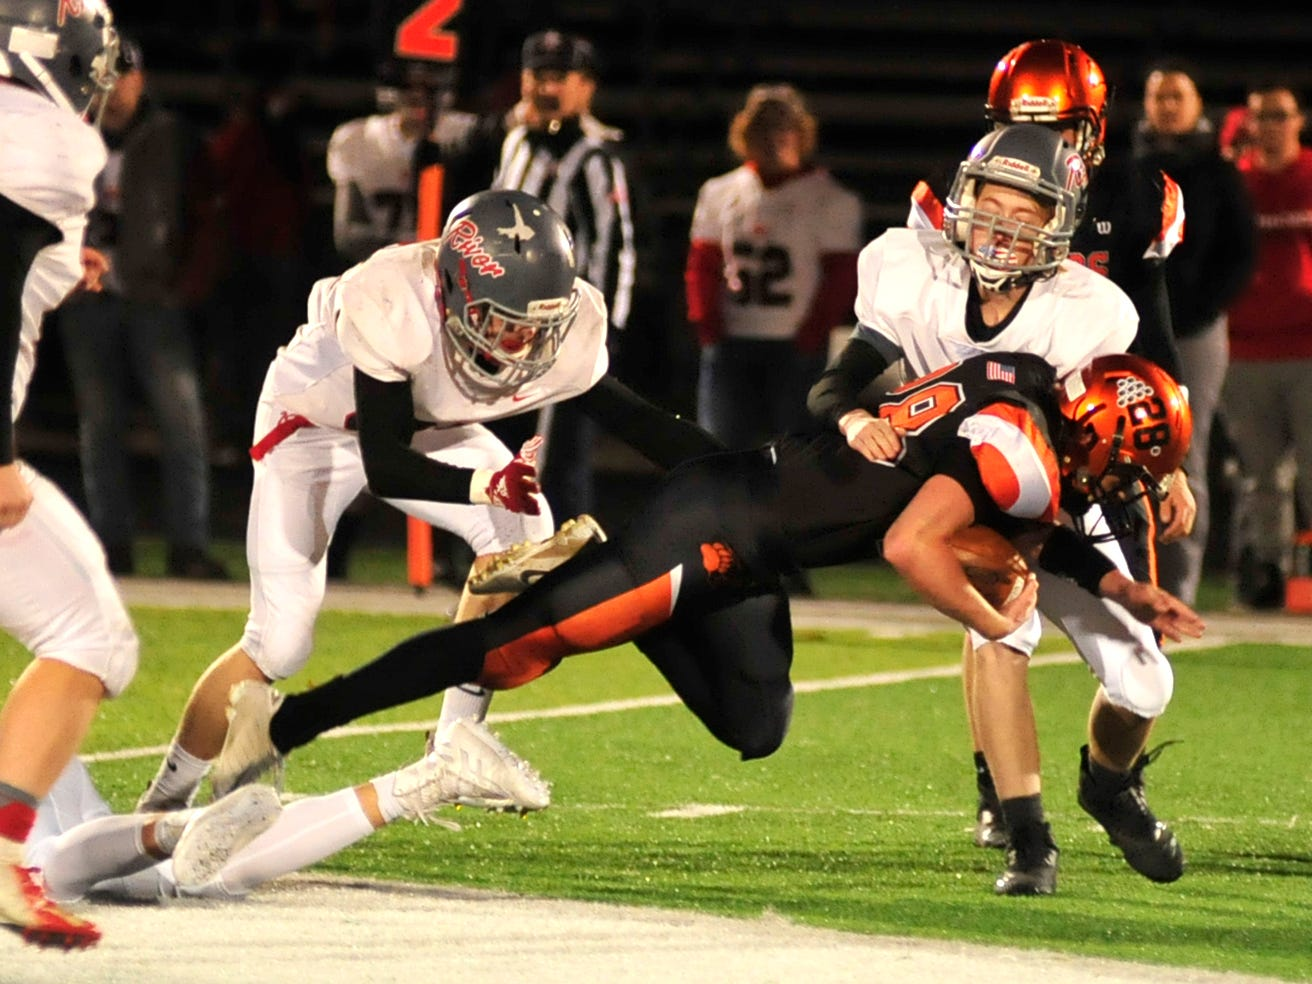 Lucas' Timmy Fife dives with the ball while playing against River while playing at Madison on Saturday night.